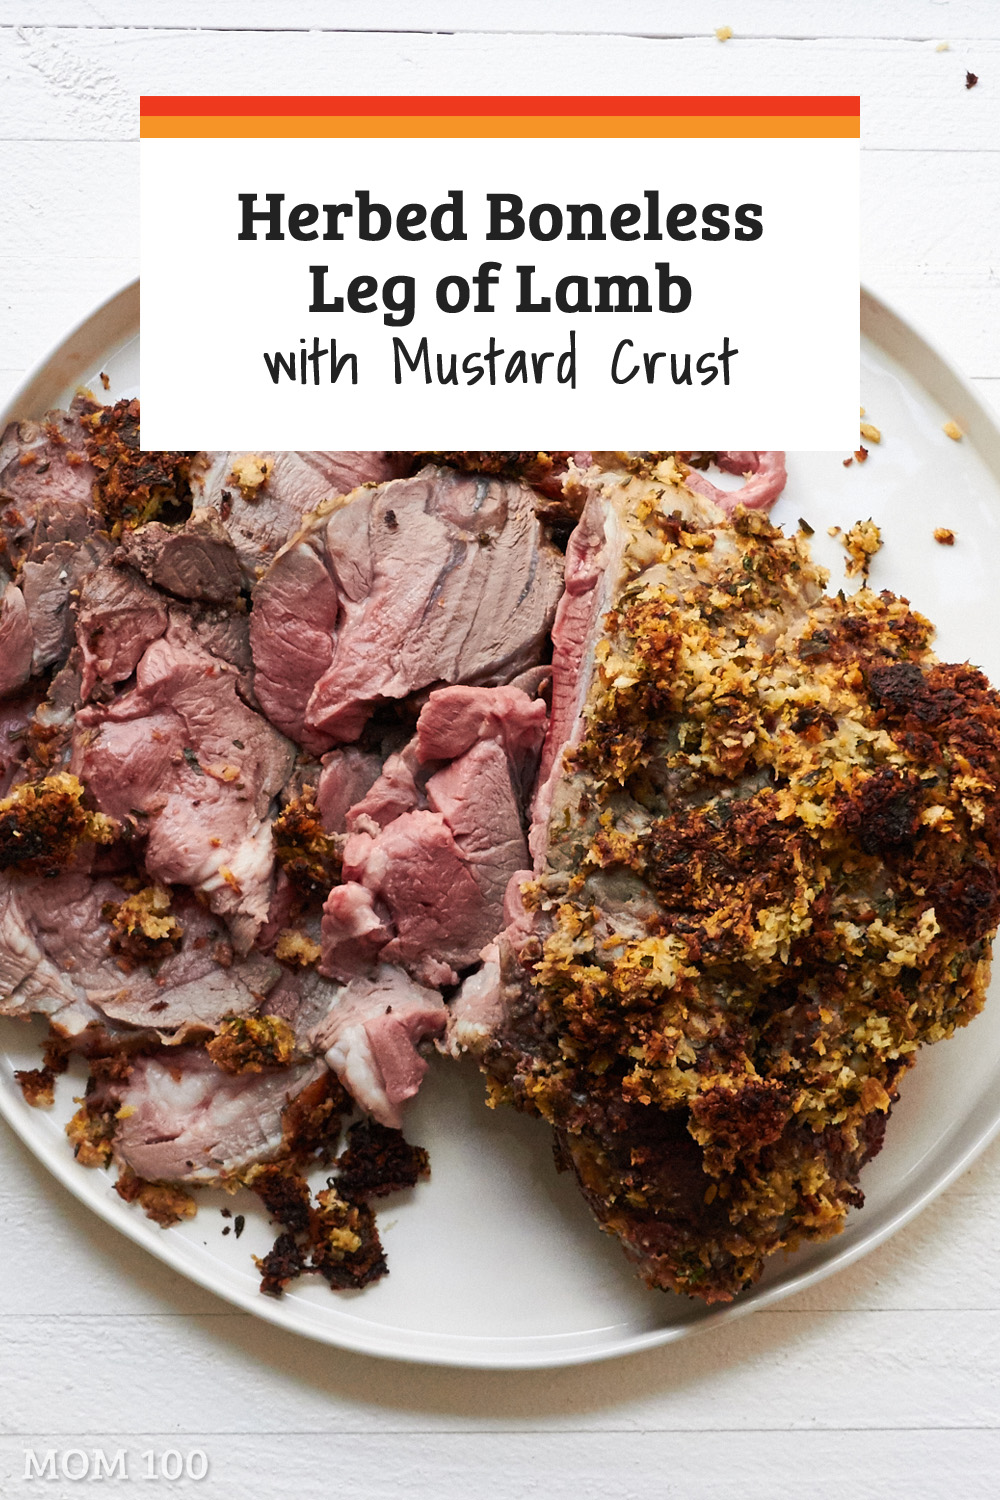 This Herbed Boneless Leg of Lamb with Mustard Crust was one of the lushest and well received roasts of meat I have made in ages. It was a showstopper. #dinner #lamb